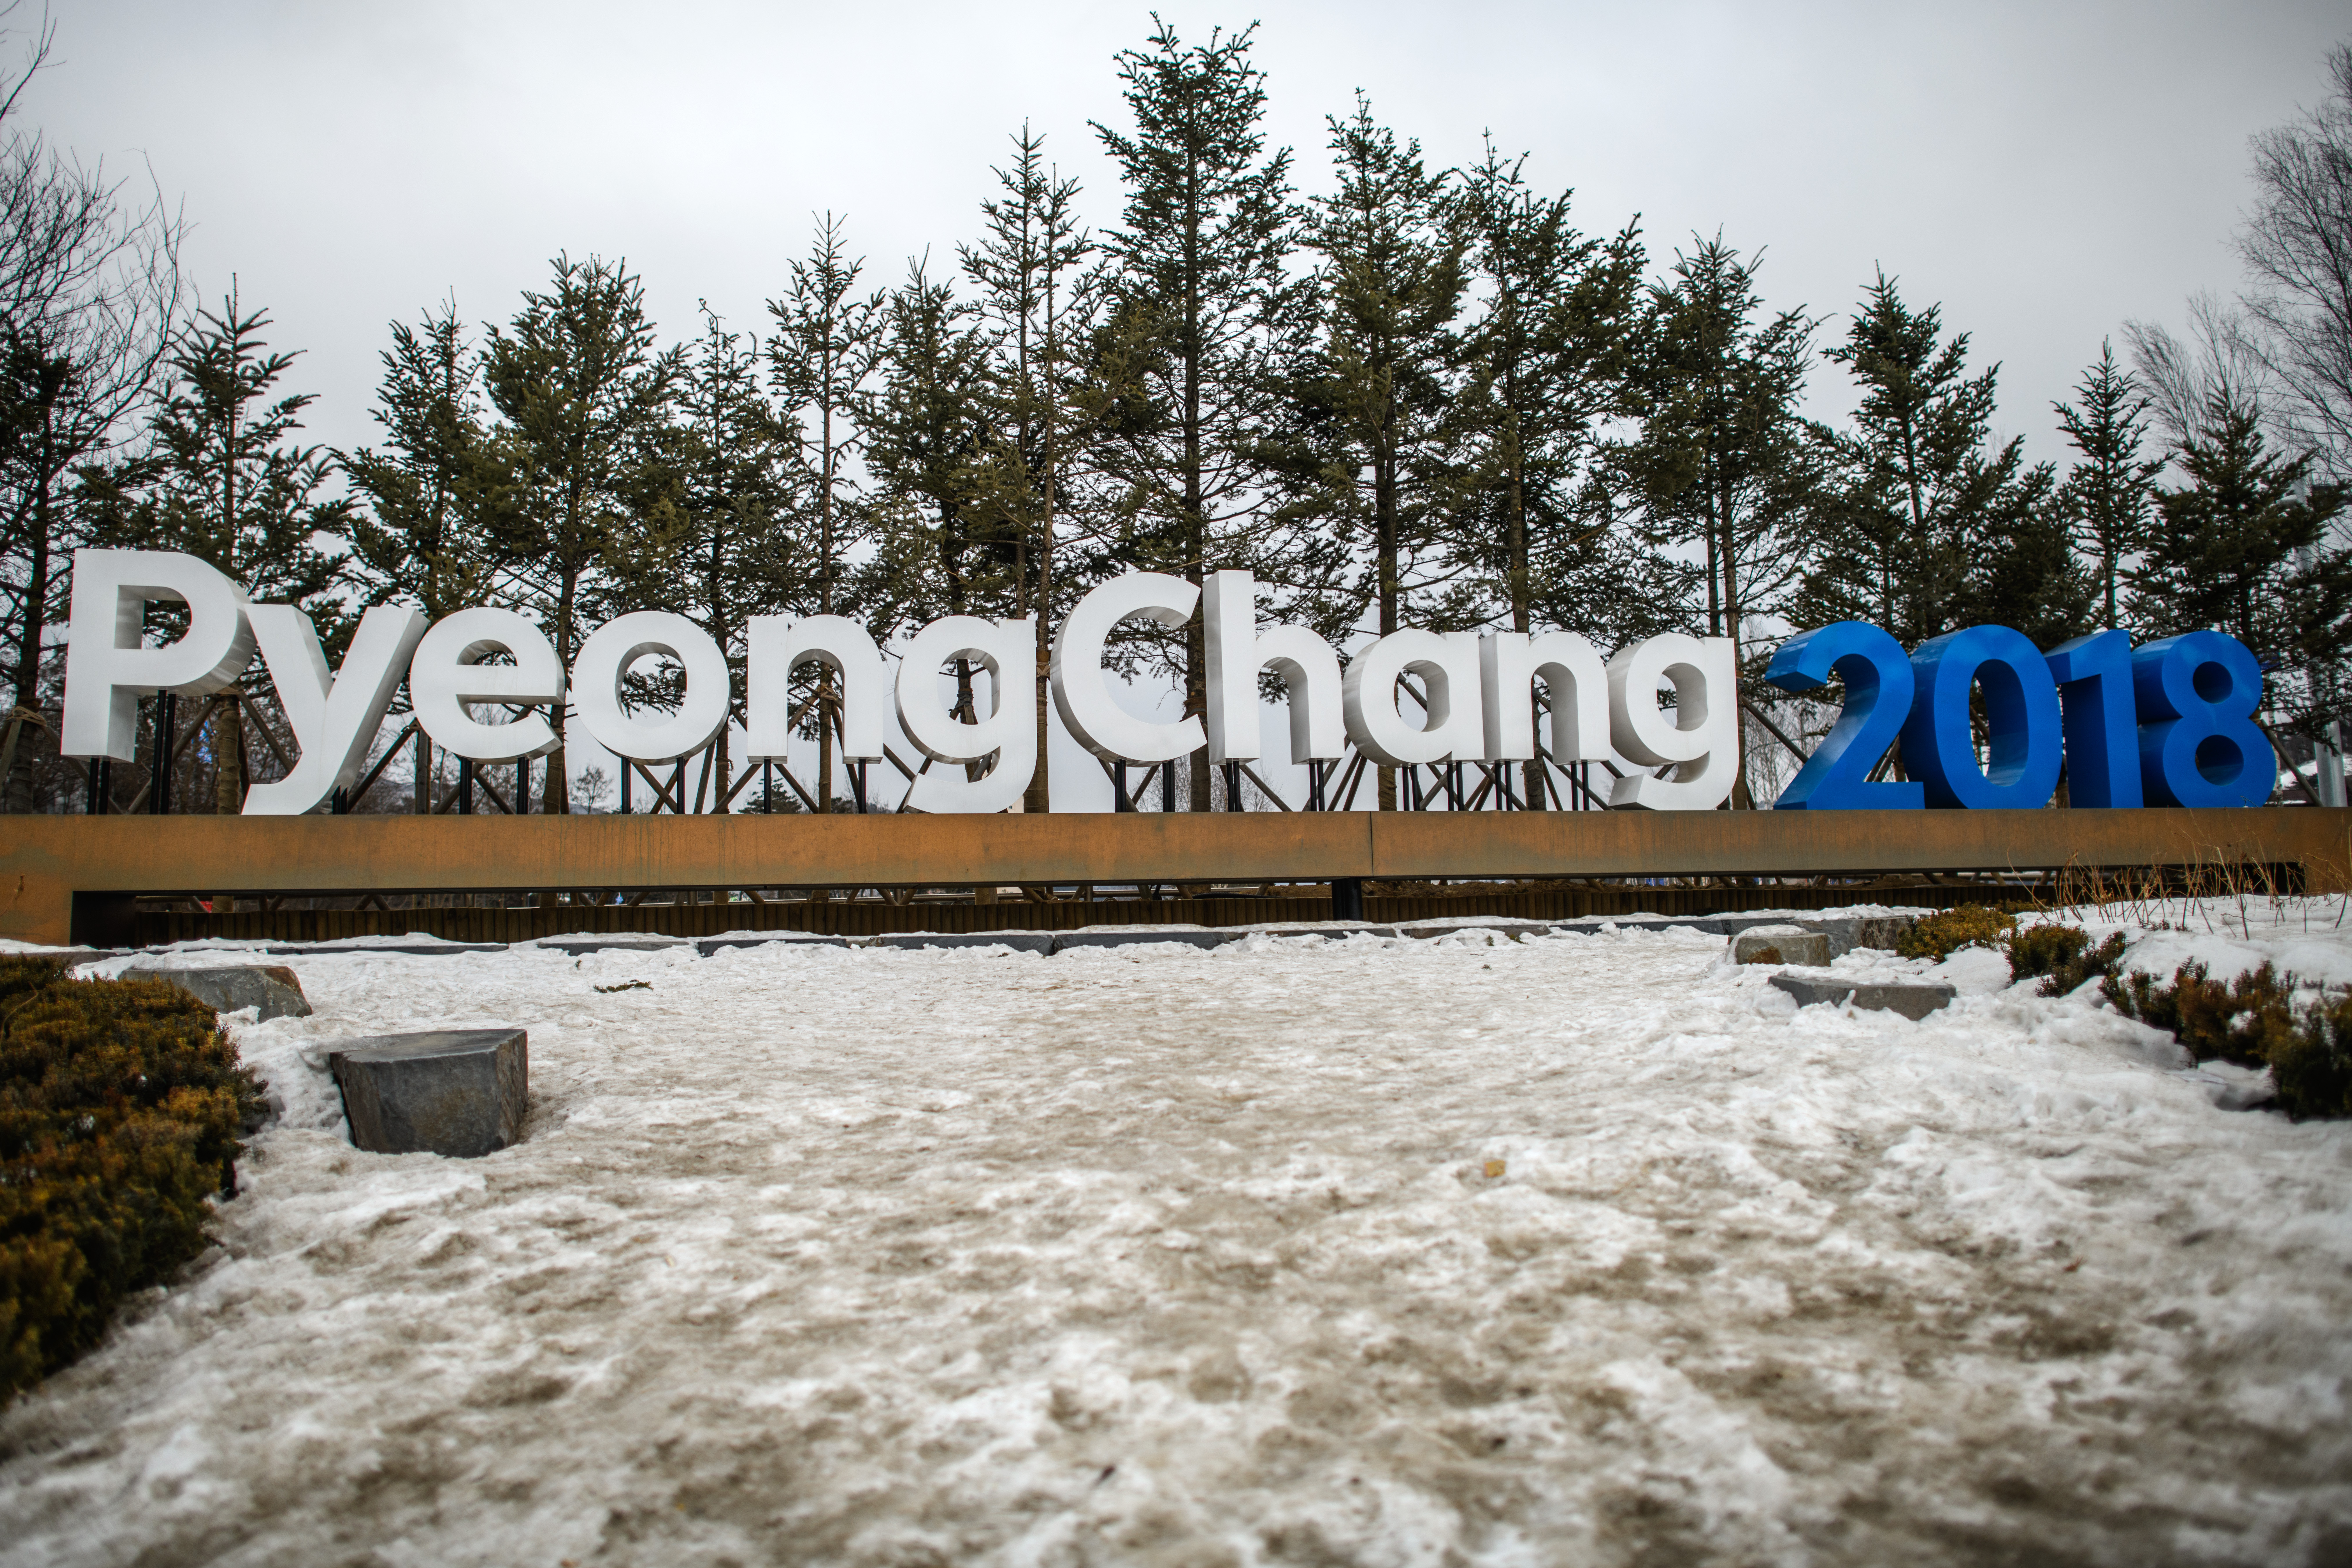 PYEONGCHANG-GUN, SOUTH KOREA - A sign for the PyeongChang 2018 Winter Olympics is displayed by a road leading into PyeongChang, on February 11, (Carl Court/Getty Images)